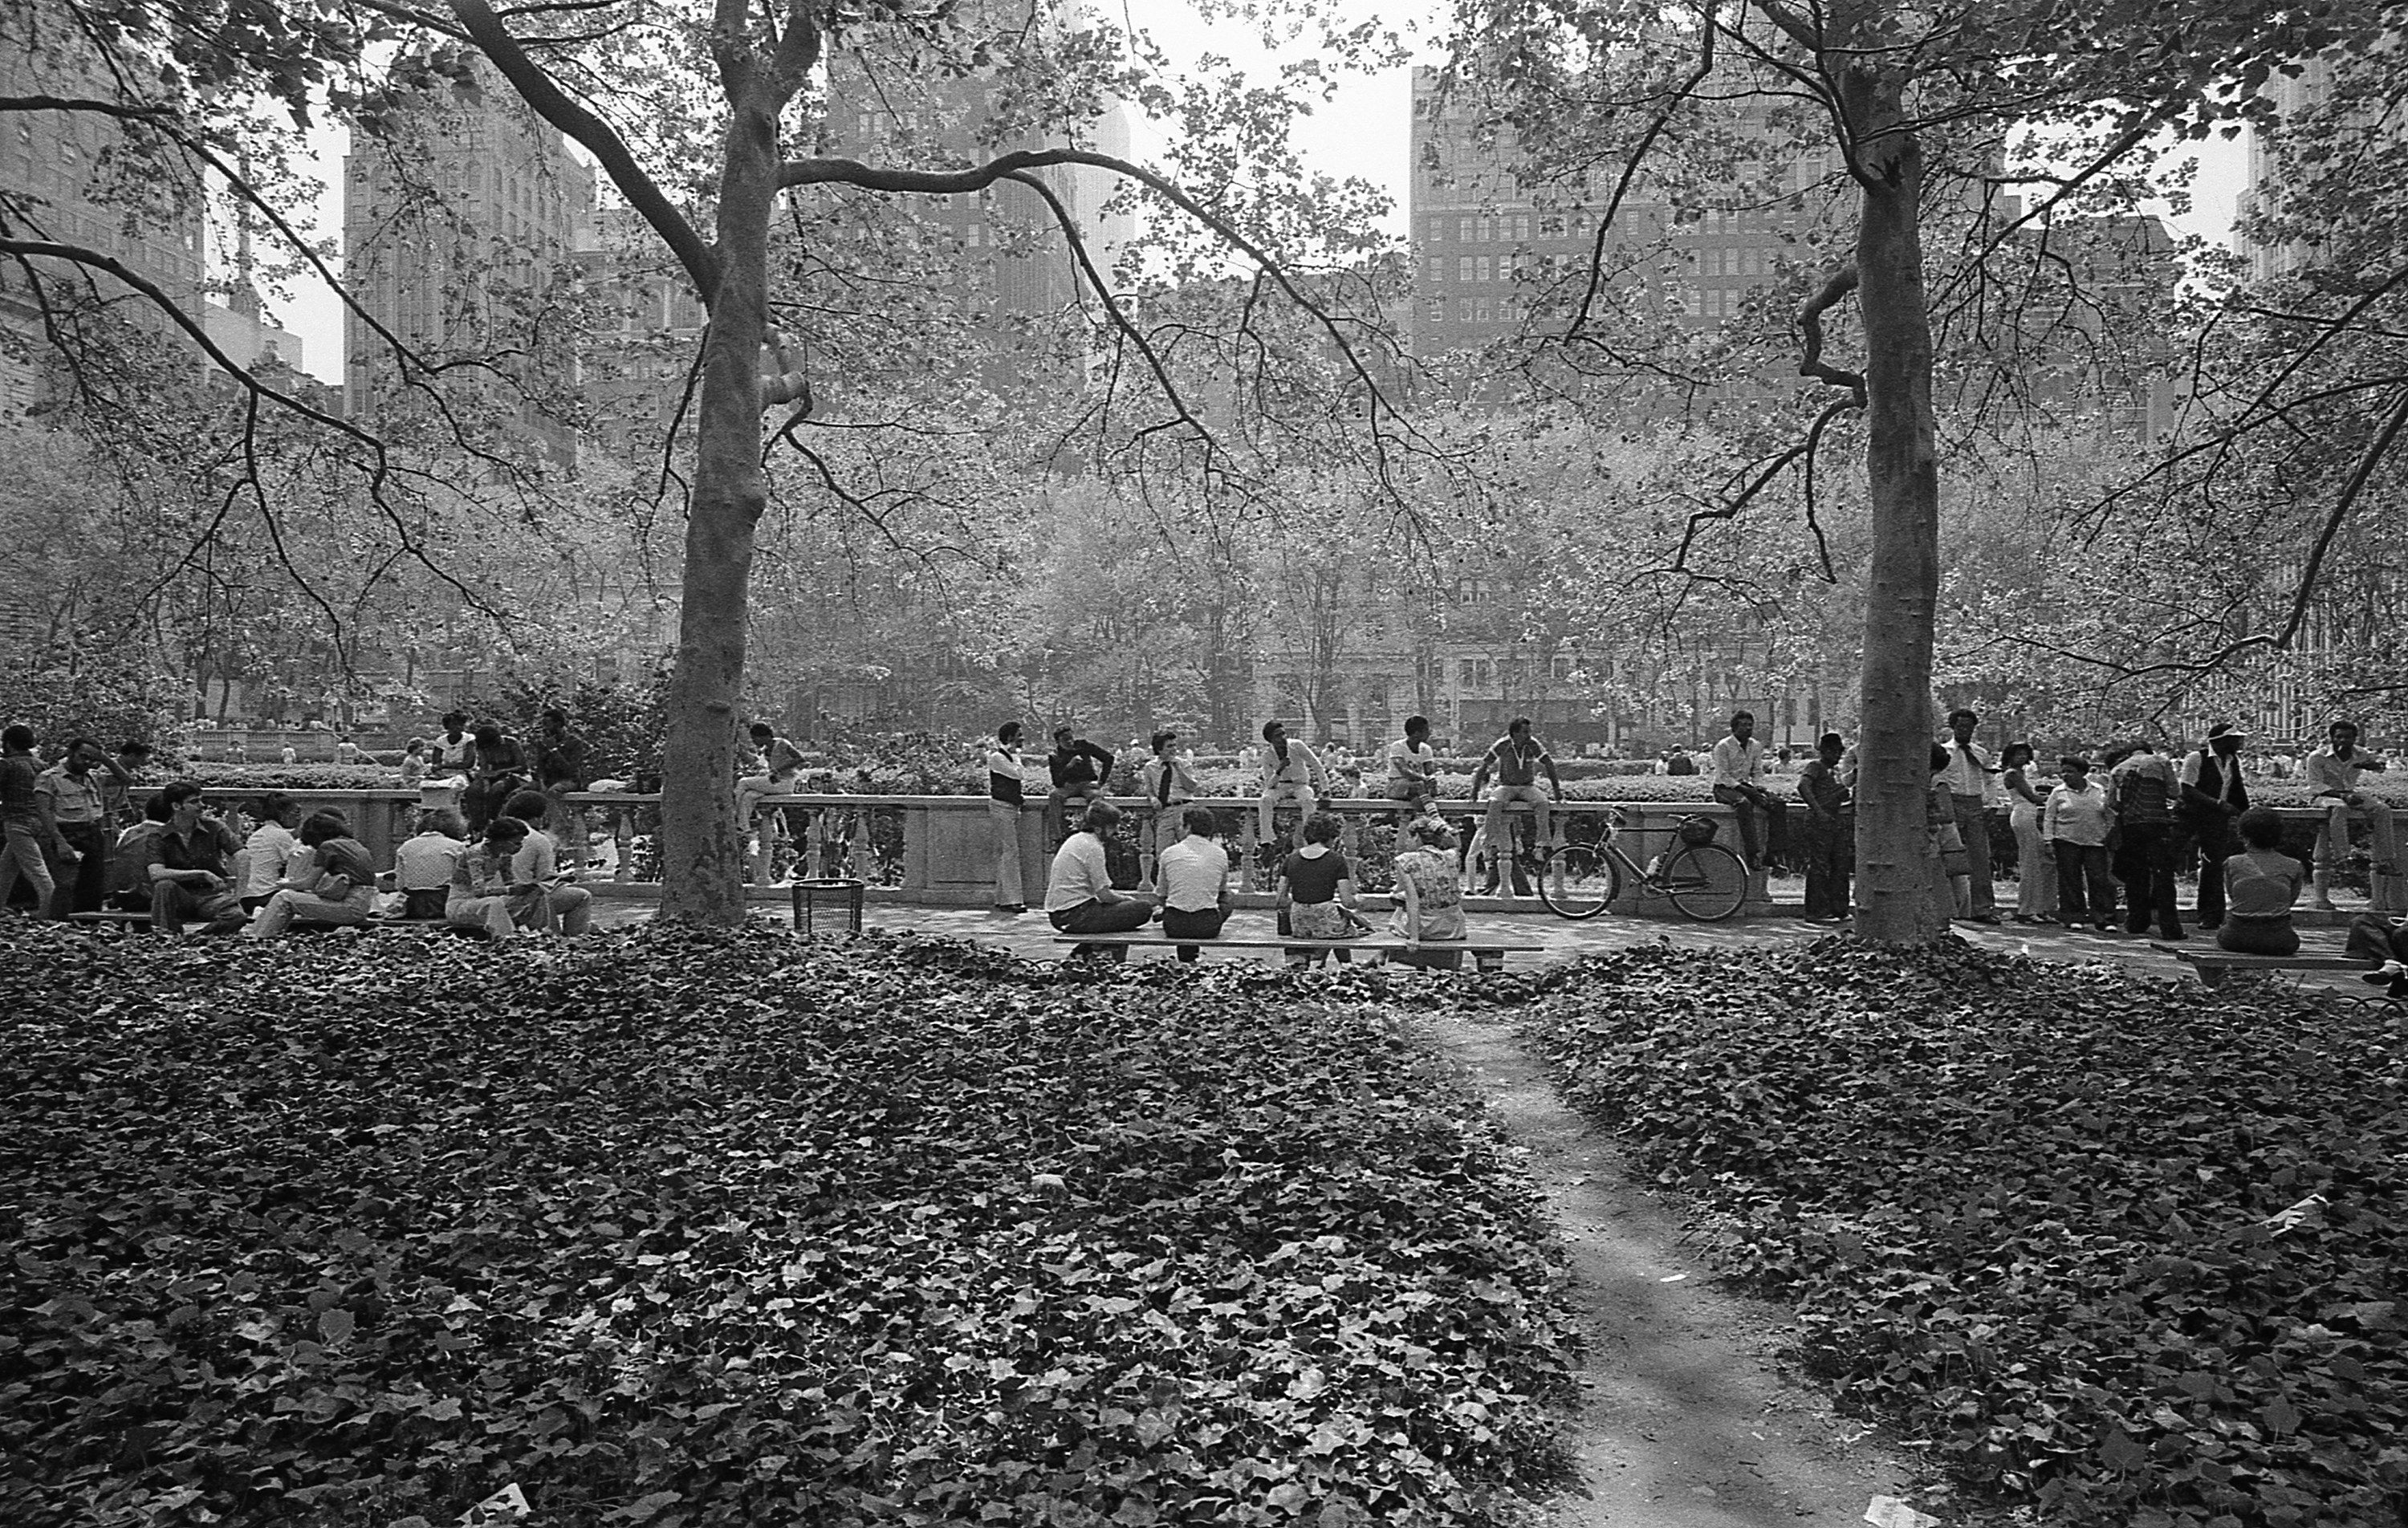 People sitting outside in a park with ivy and a path running leading toward them